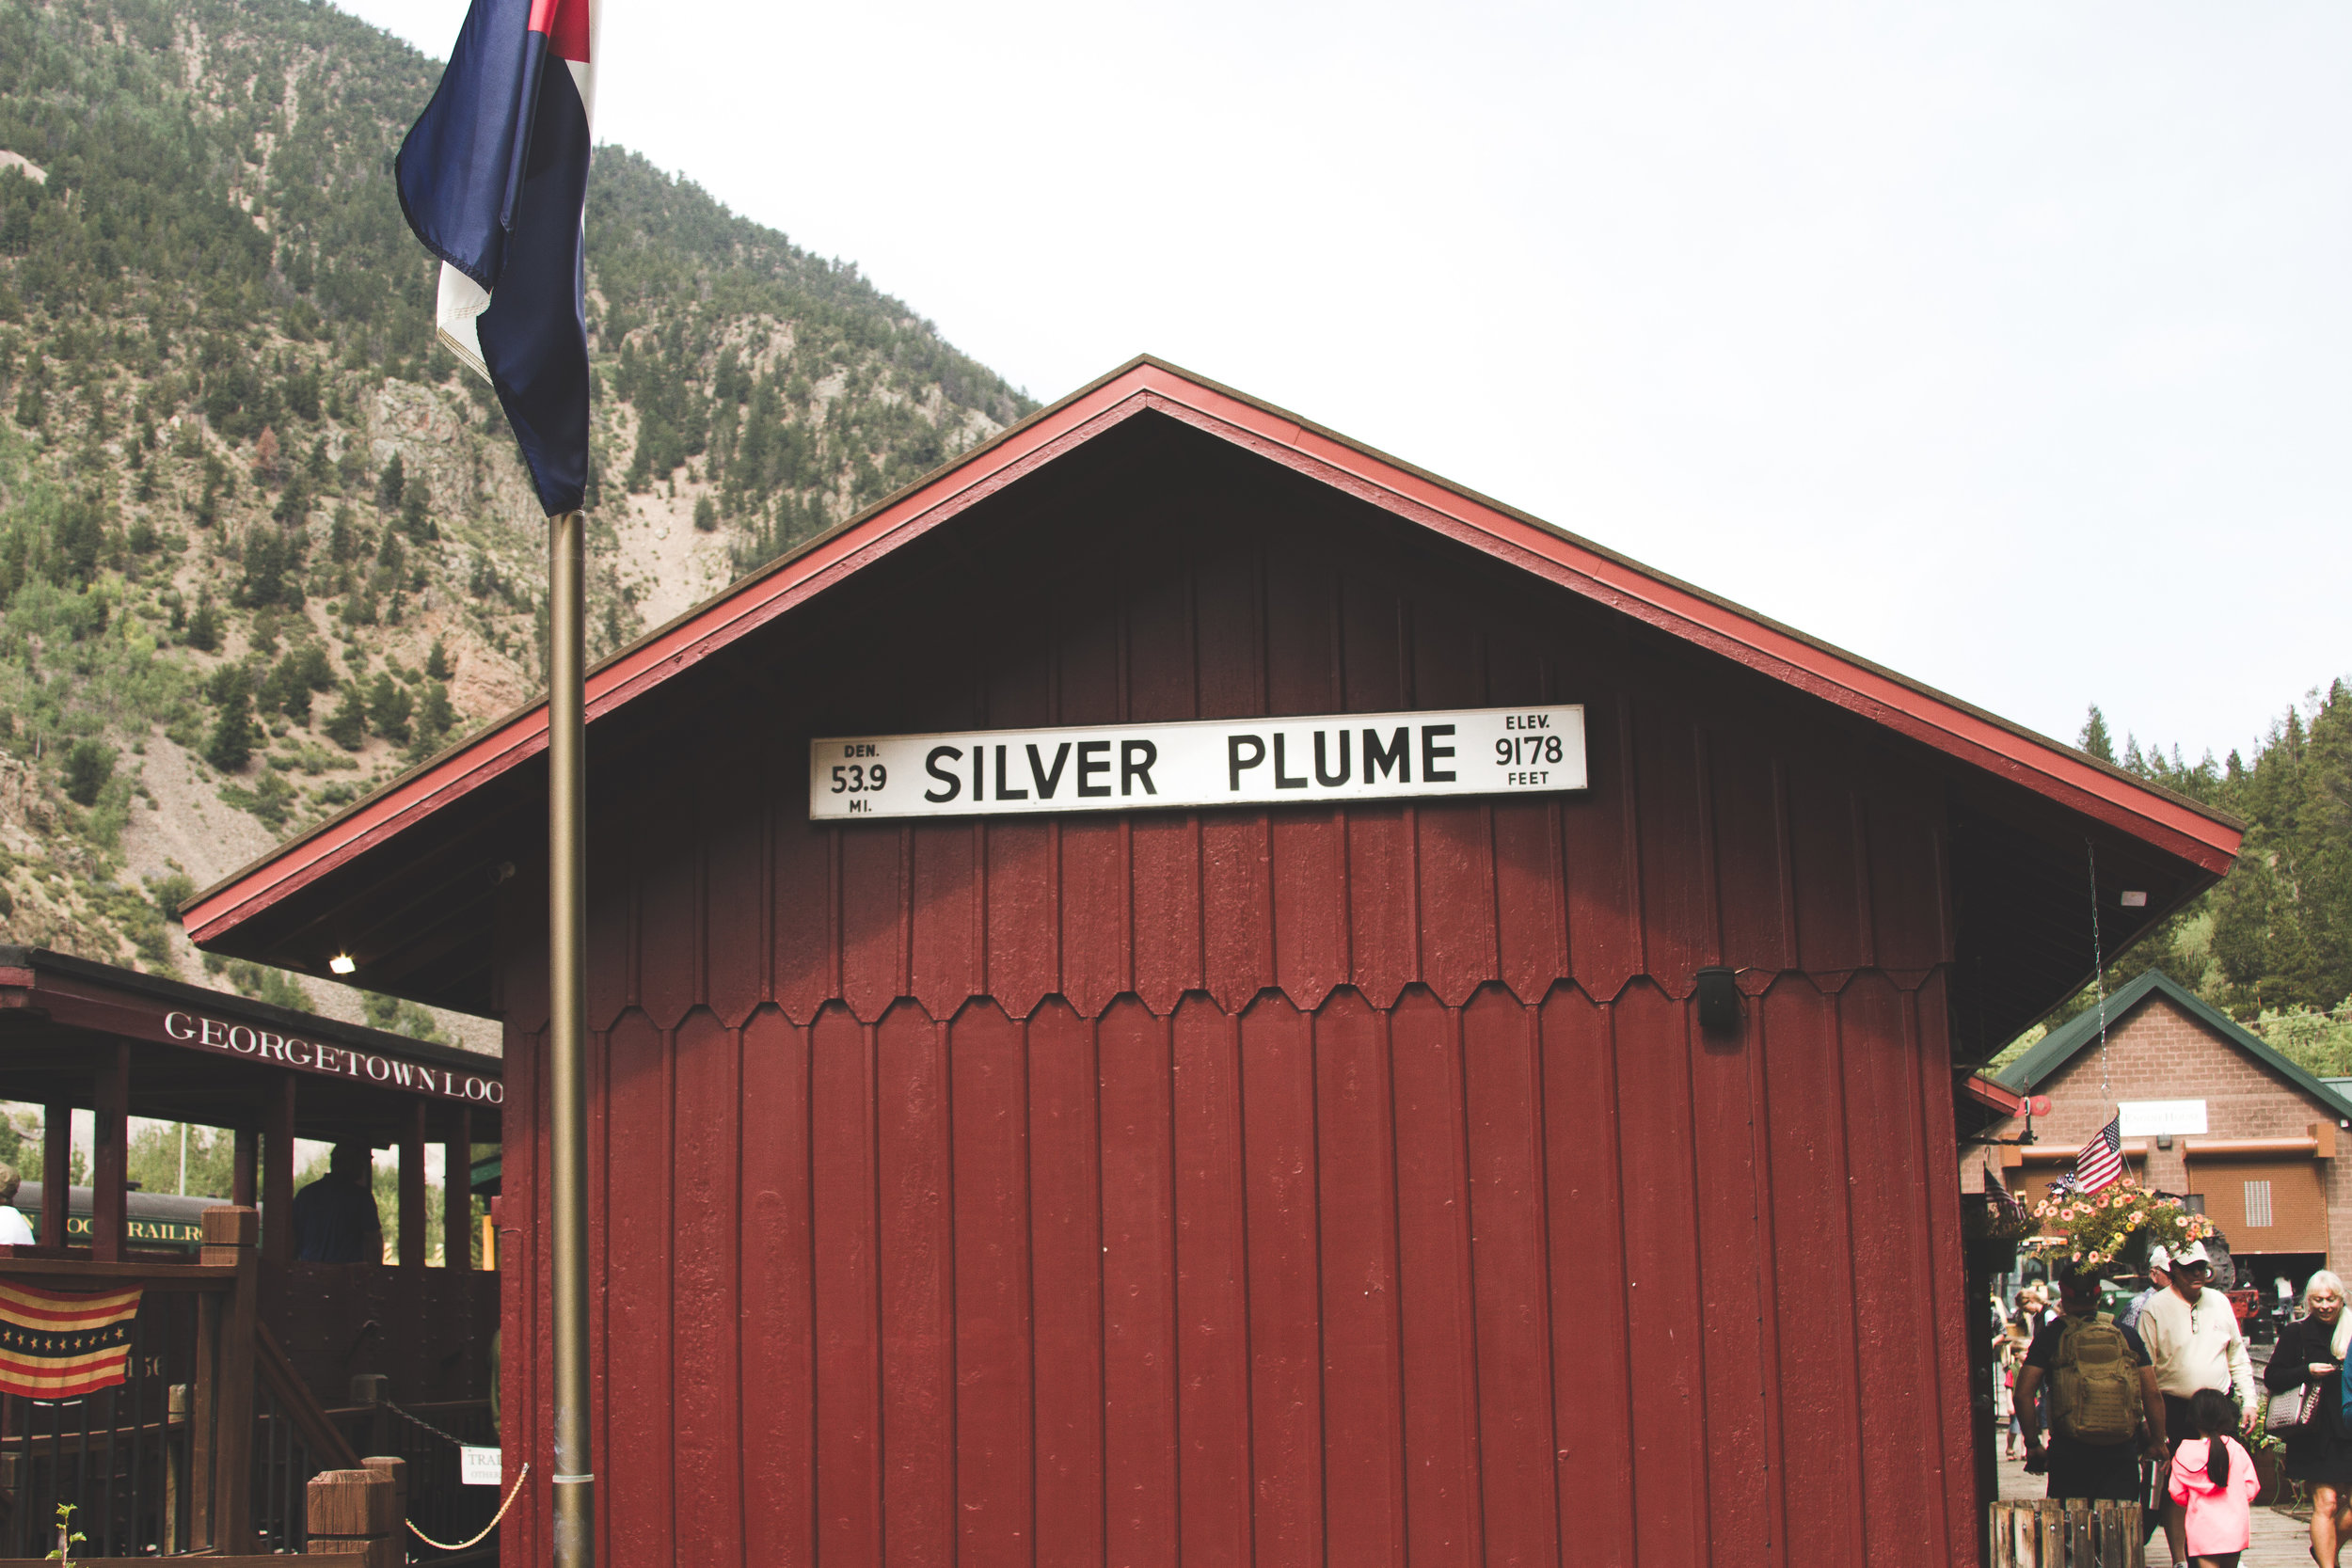 Silver Plume deport